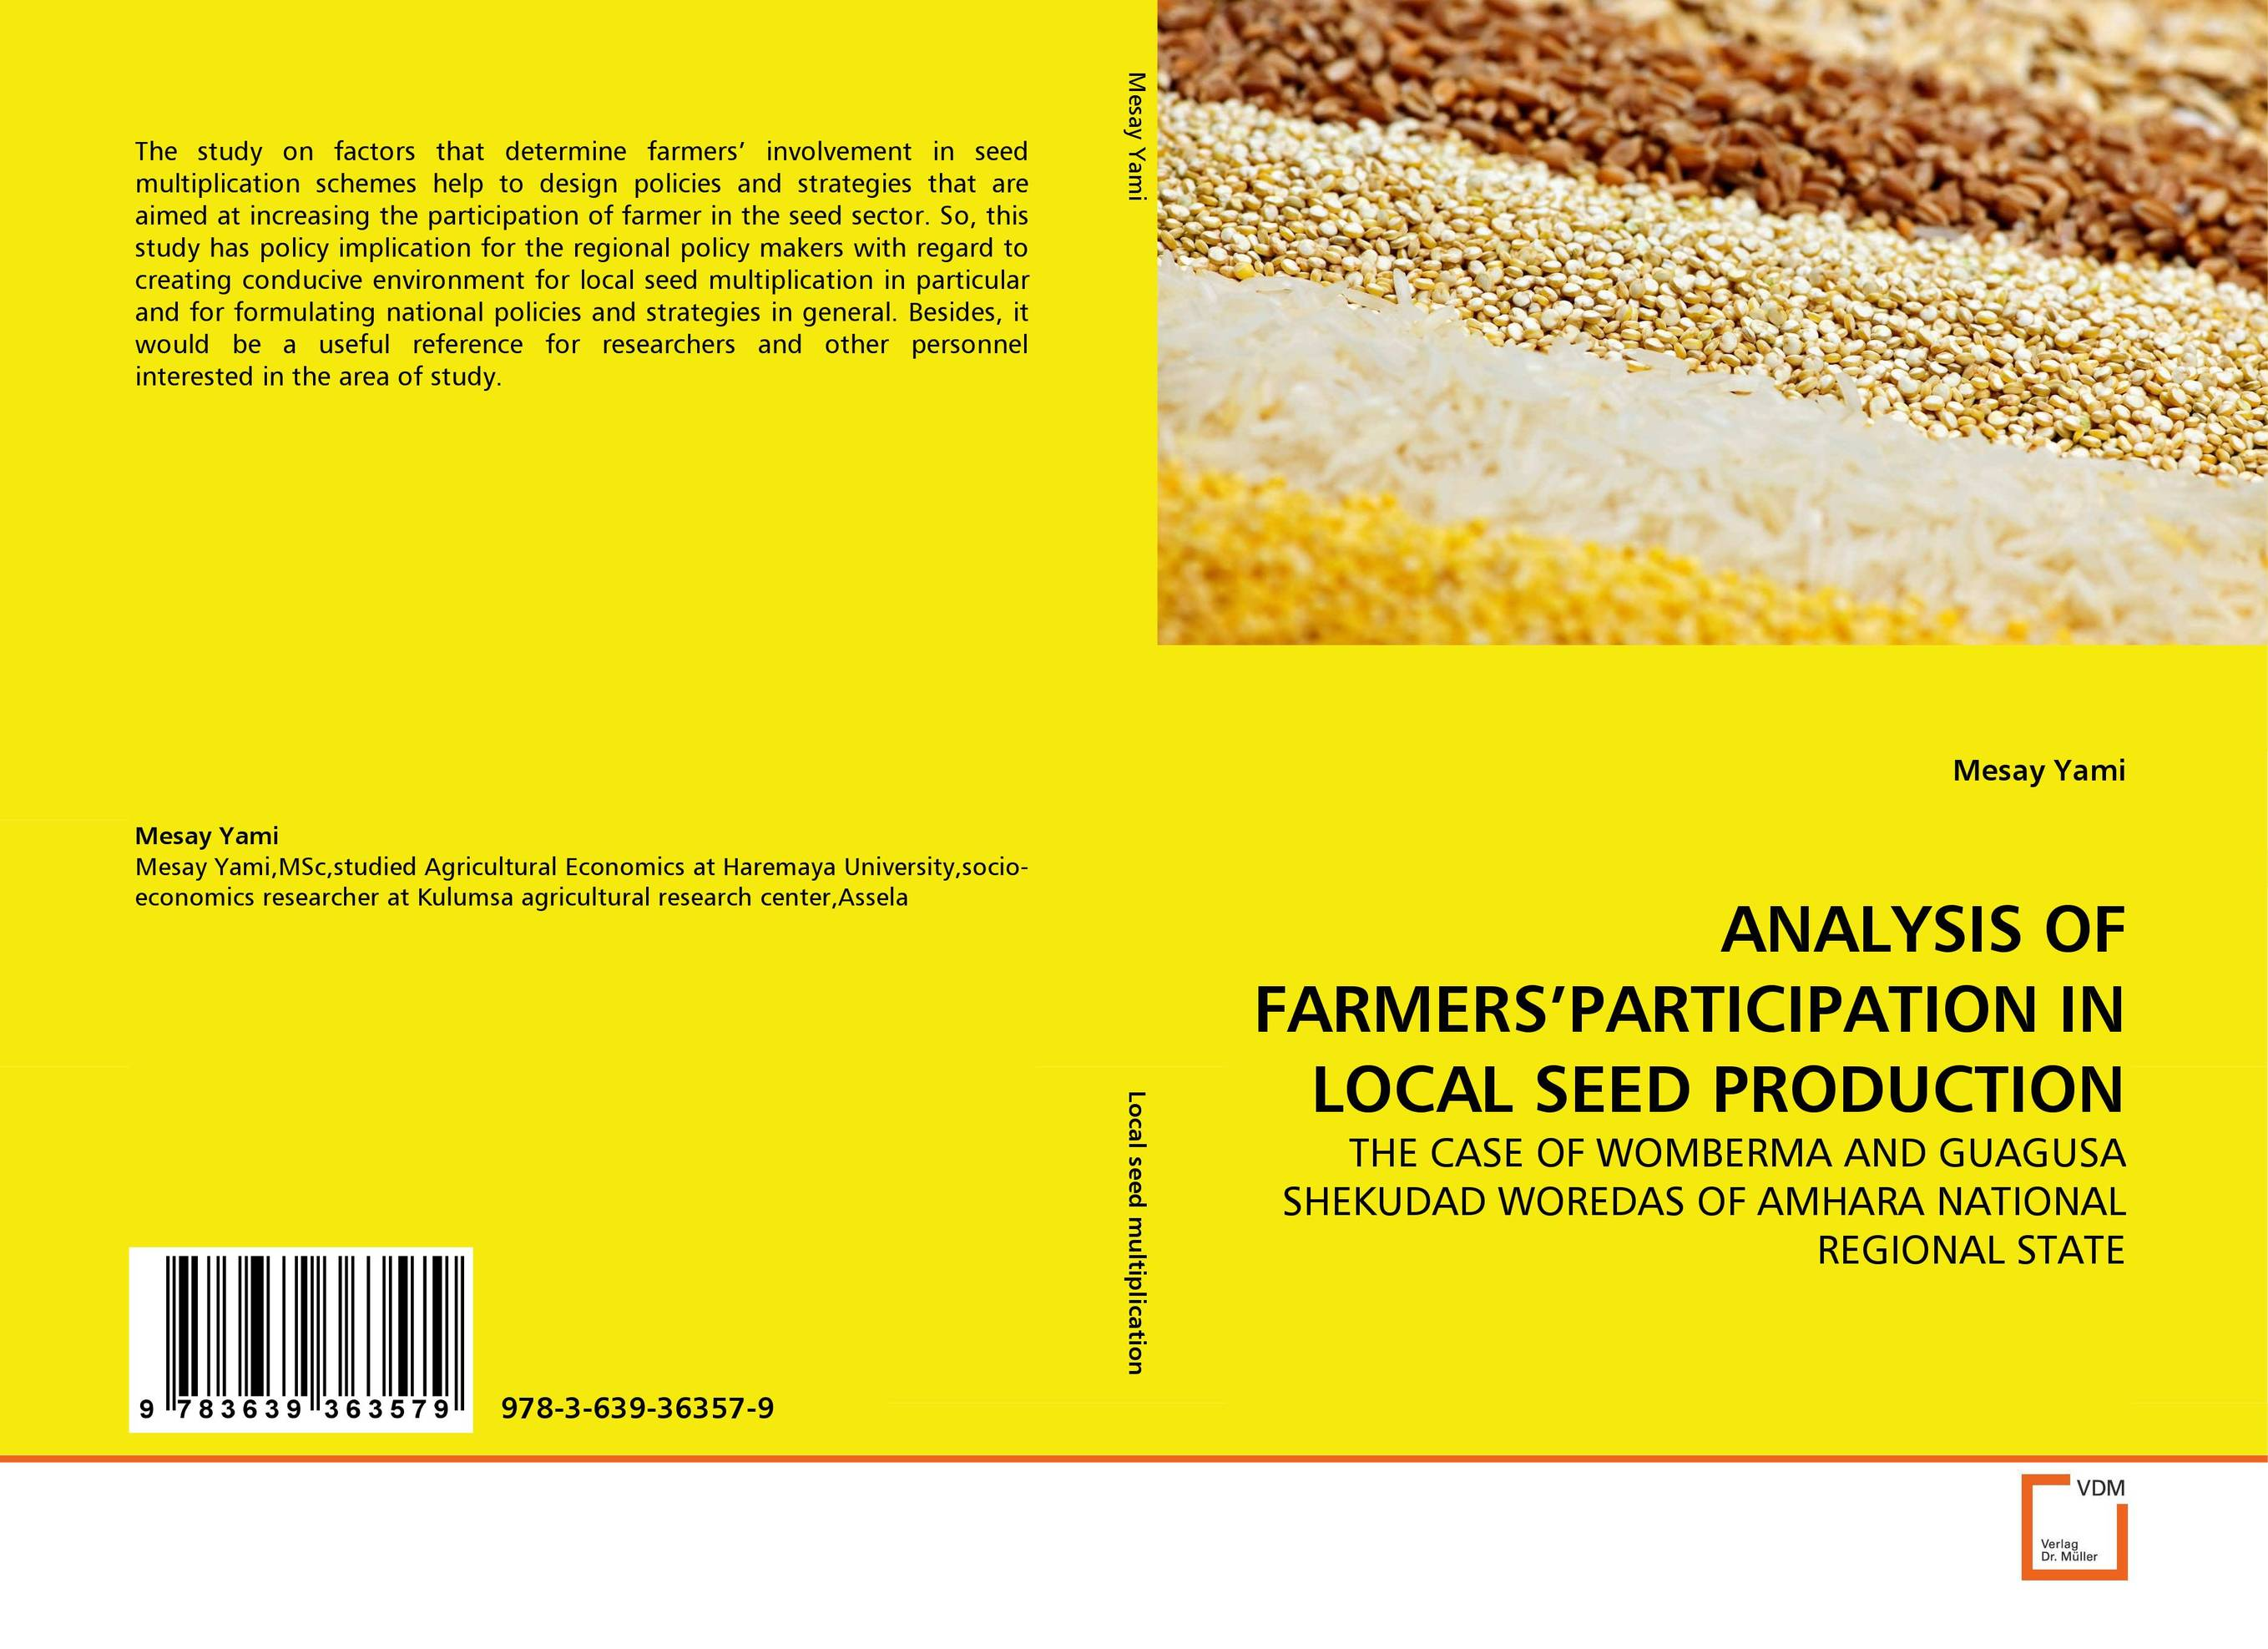 ANALYSIS OF FARMERS''PARTICIPATION IN LOCAL SEED PRODUCTION genetic analysis of seed yield and other attributes in lentil